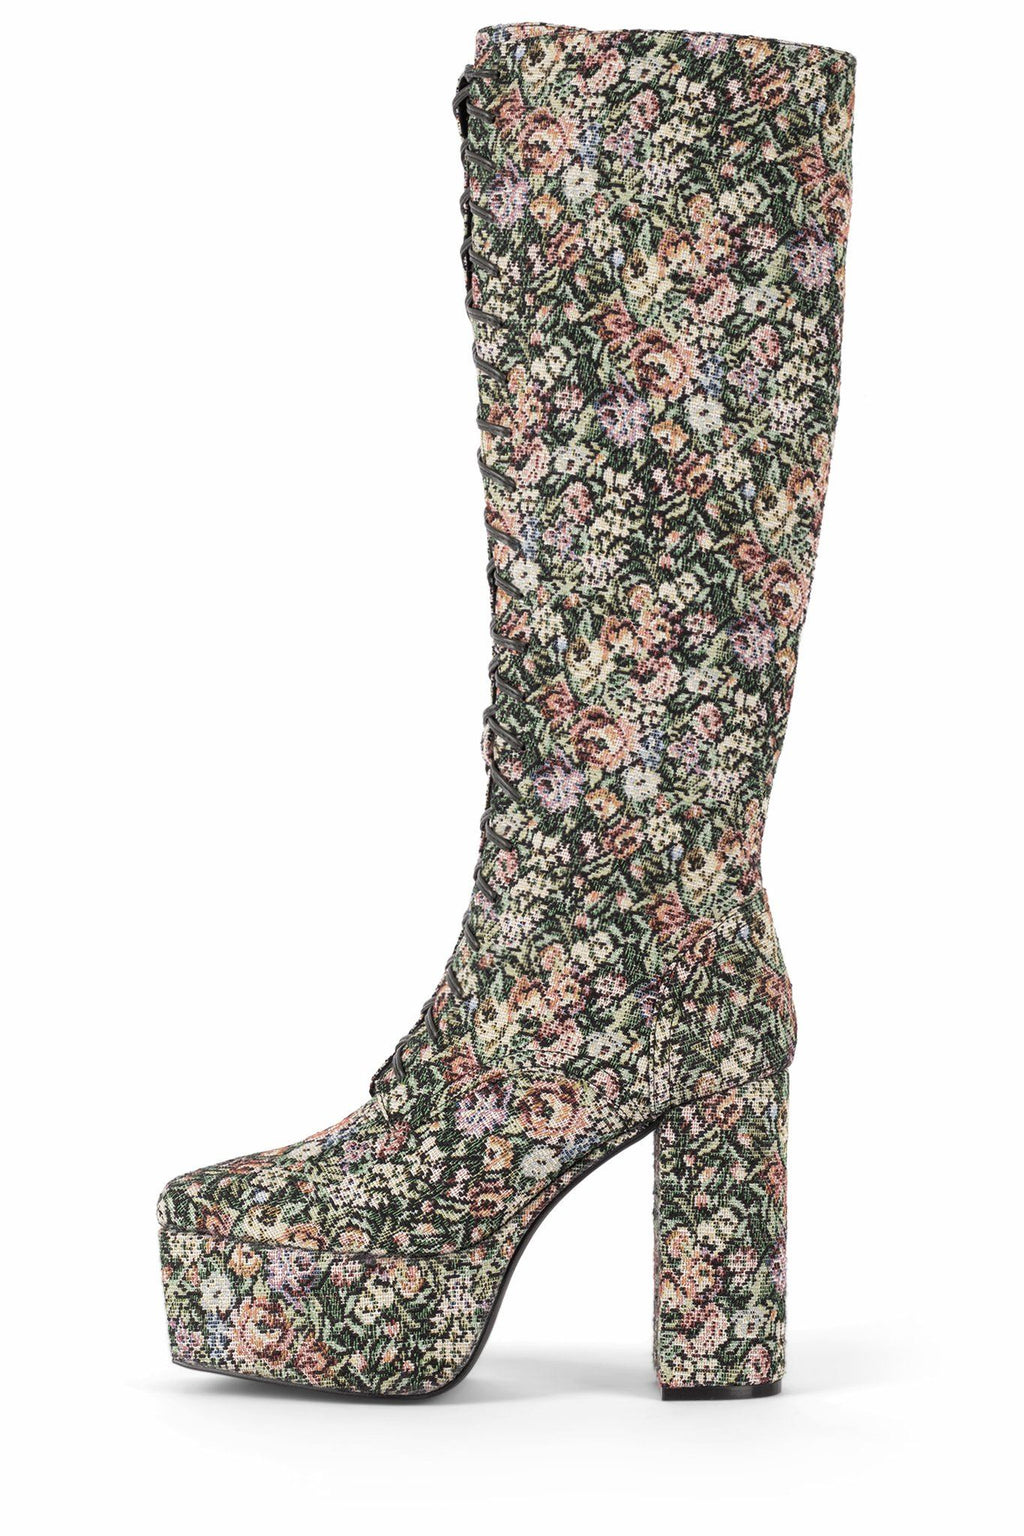 CLOVED-LU Knee-High Boot DV Floral Tapestry 5